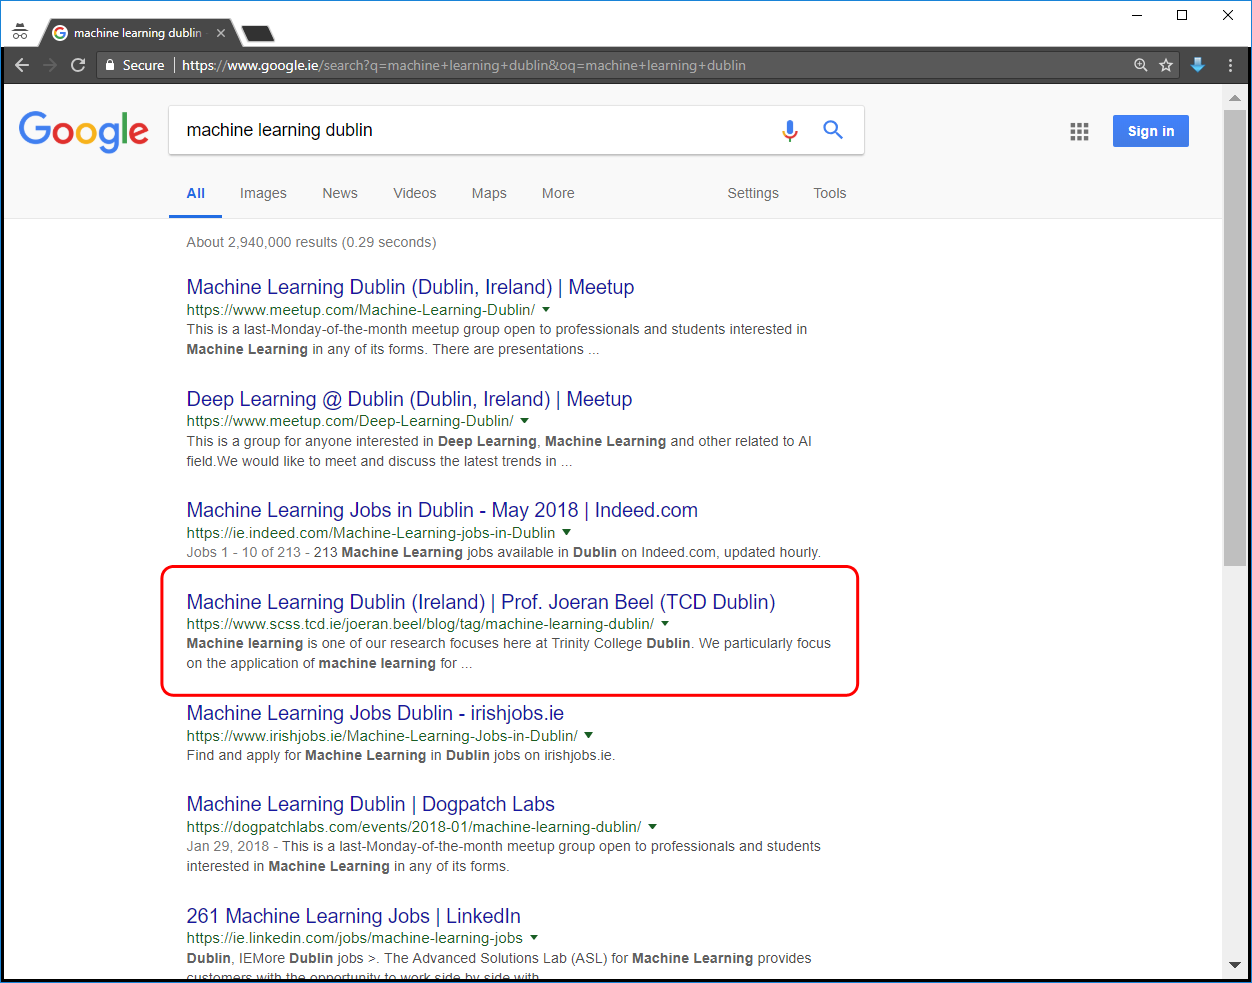 'Machine Learning Dublin' Search Results on Google